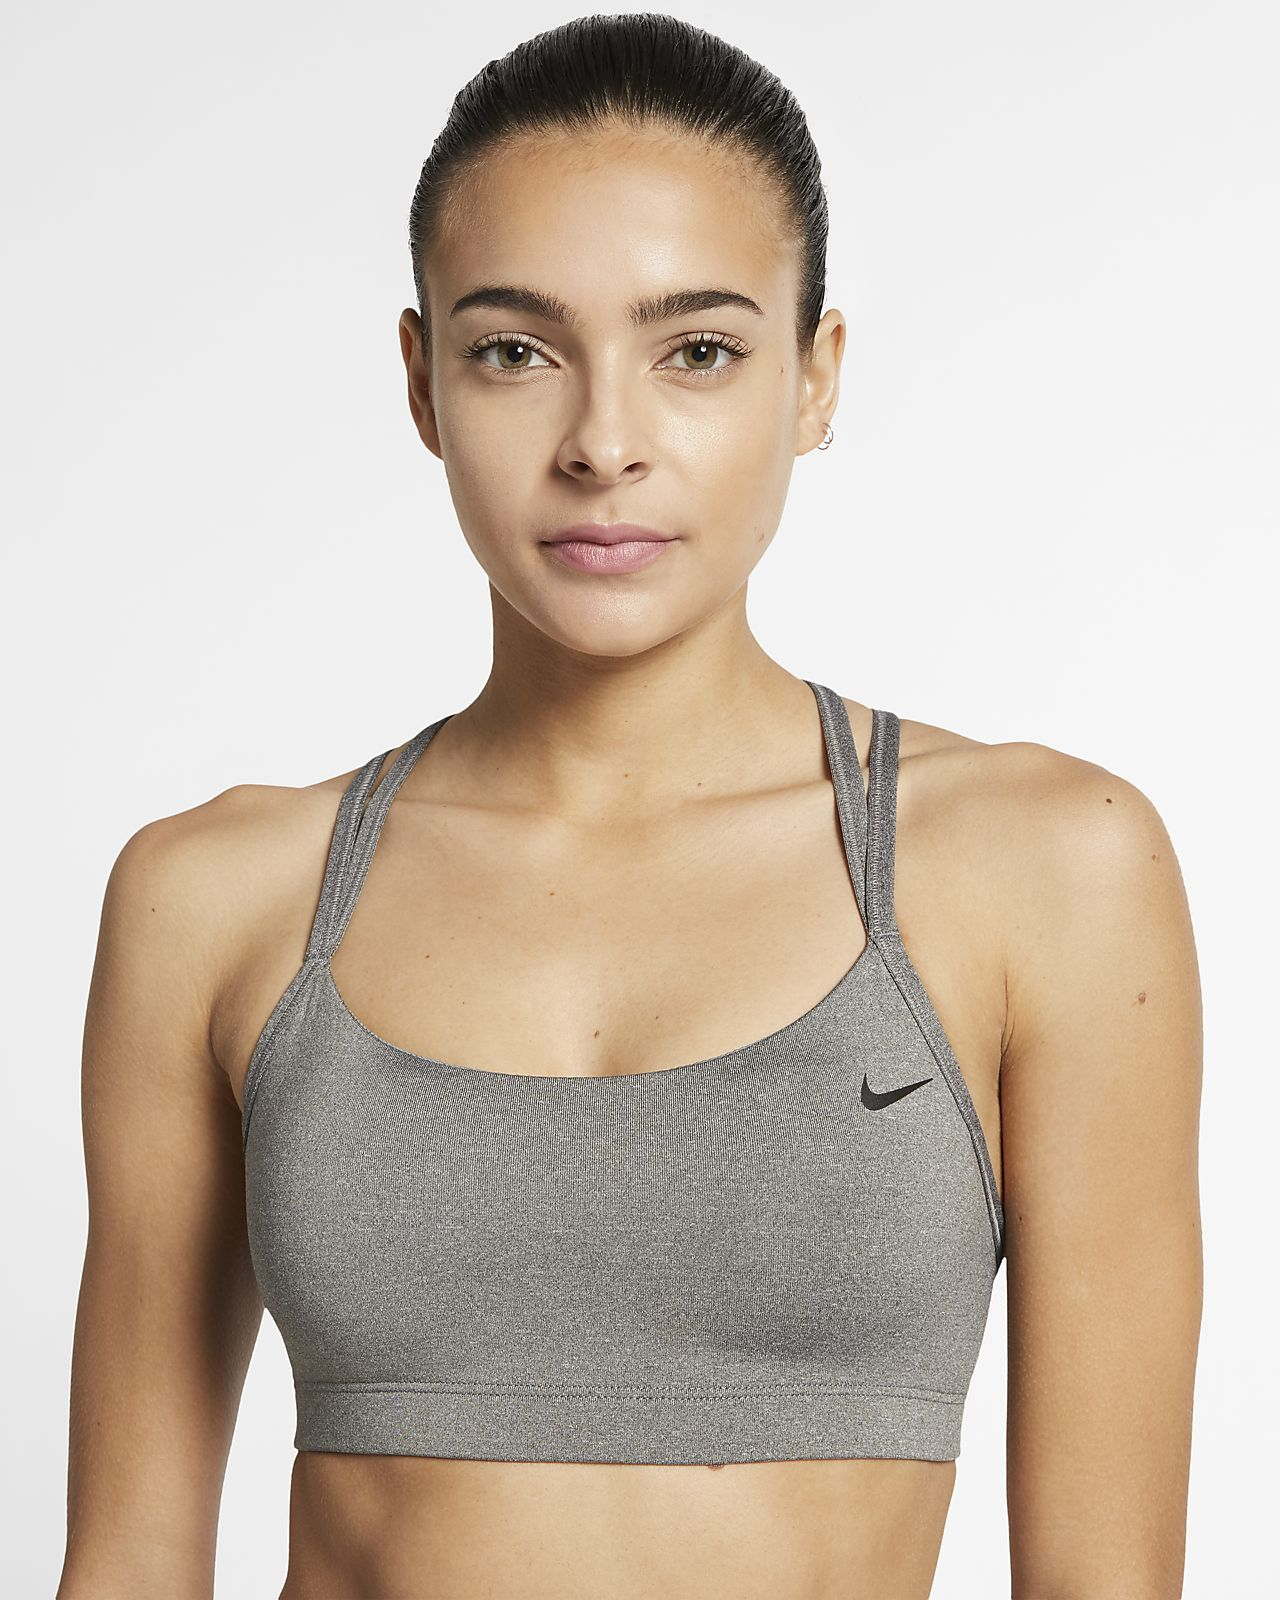 Nike Favorites Women's Light-Support Sports Padded Strappy Bra